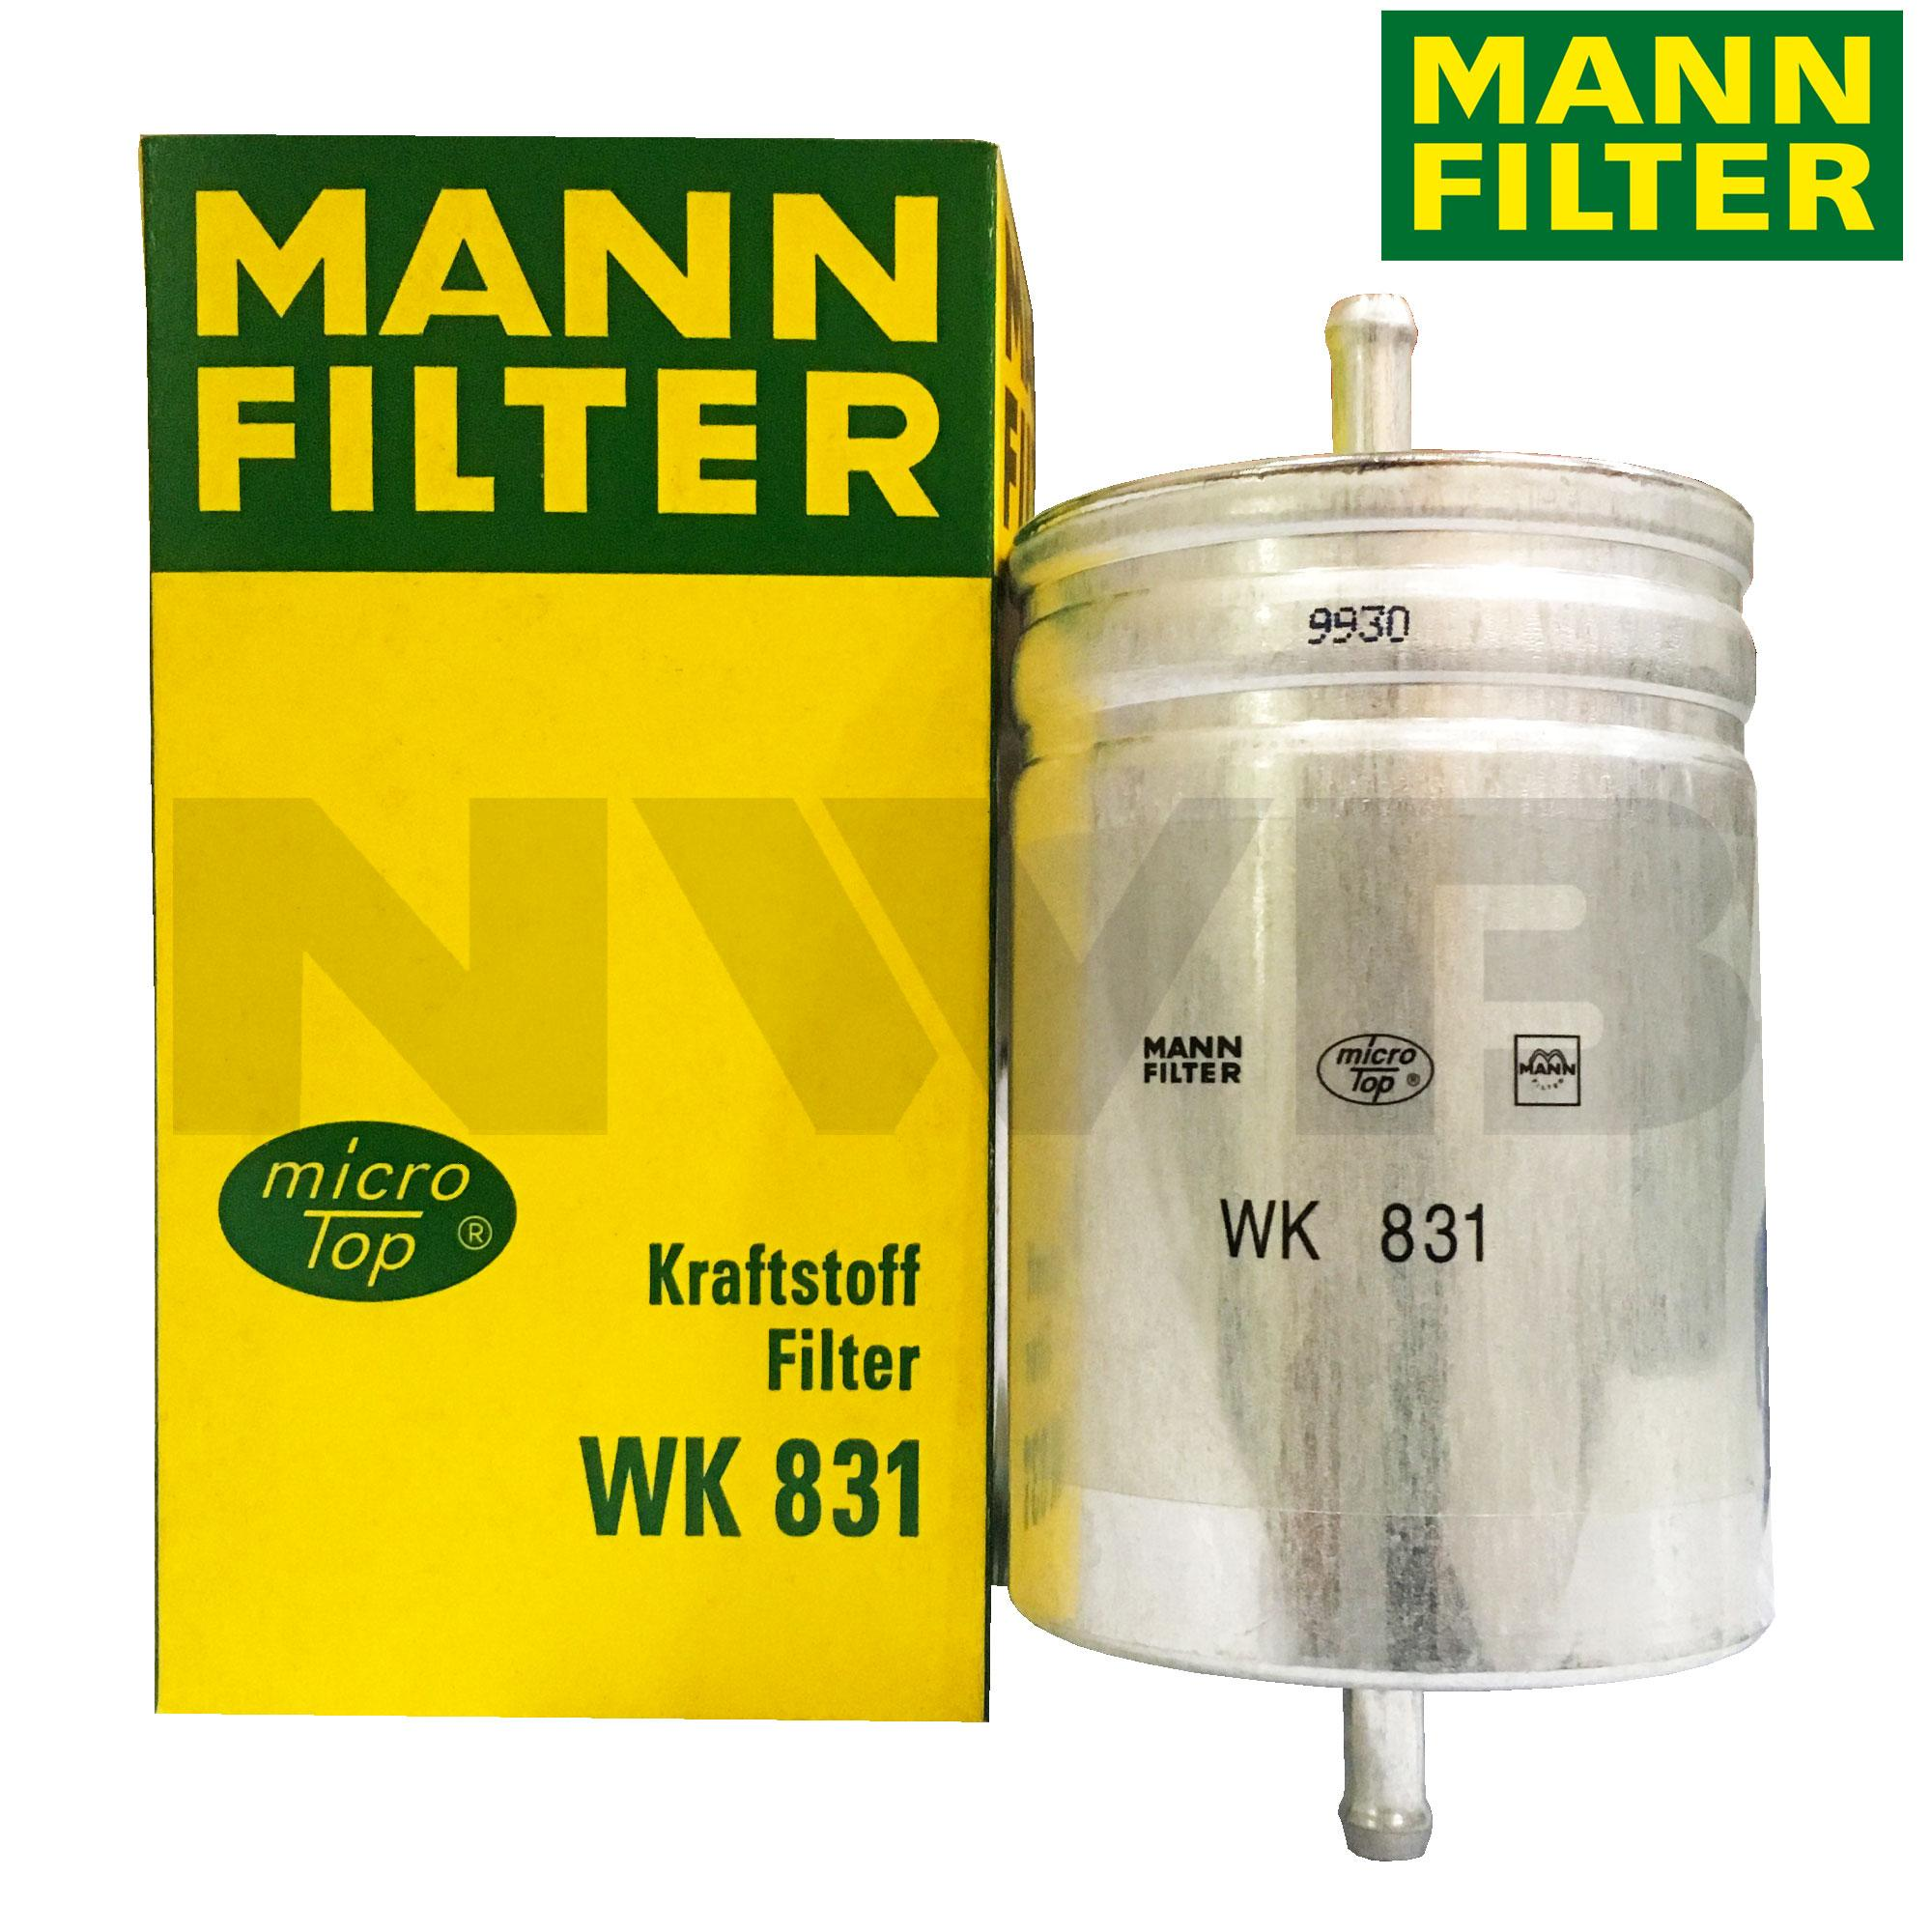 Fuel Filter For Sale Gas Online Brands Prices Reviews In 1998 Camry Location Mann Mercedes Benz C220 W202 Clk Slk 1994